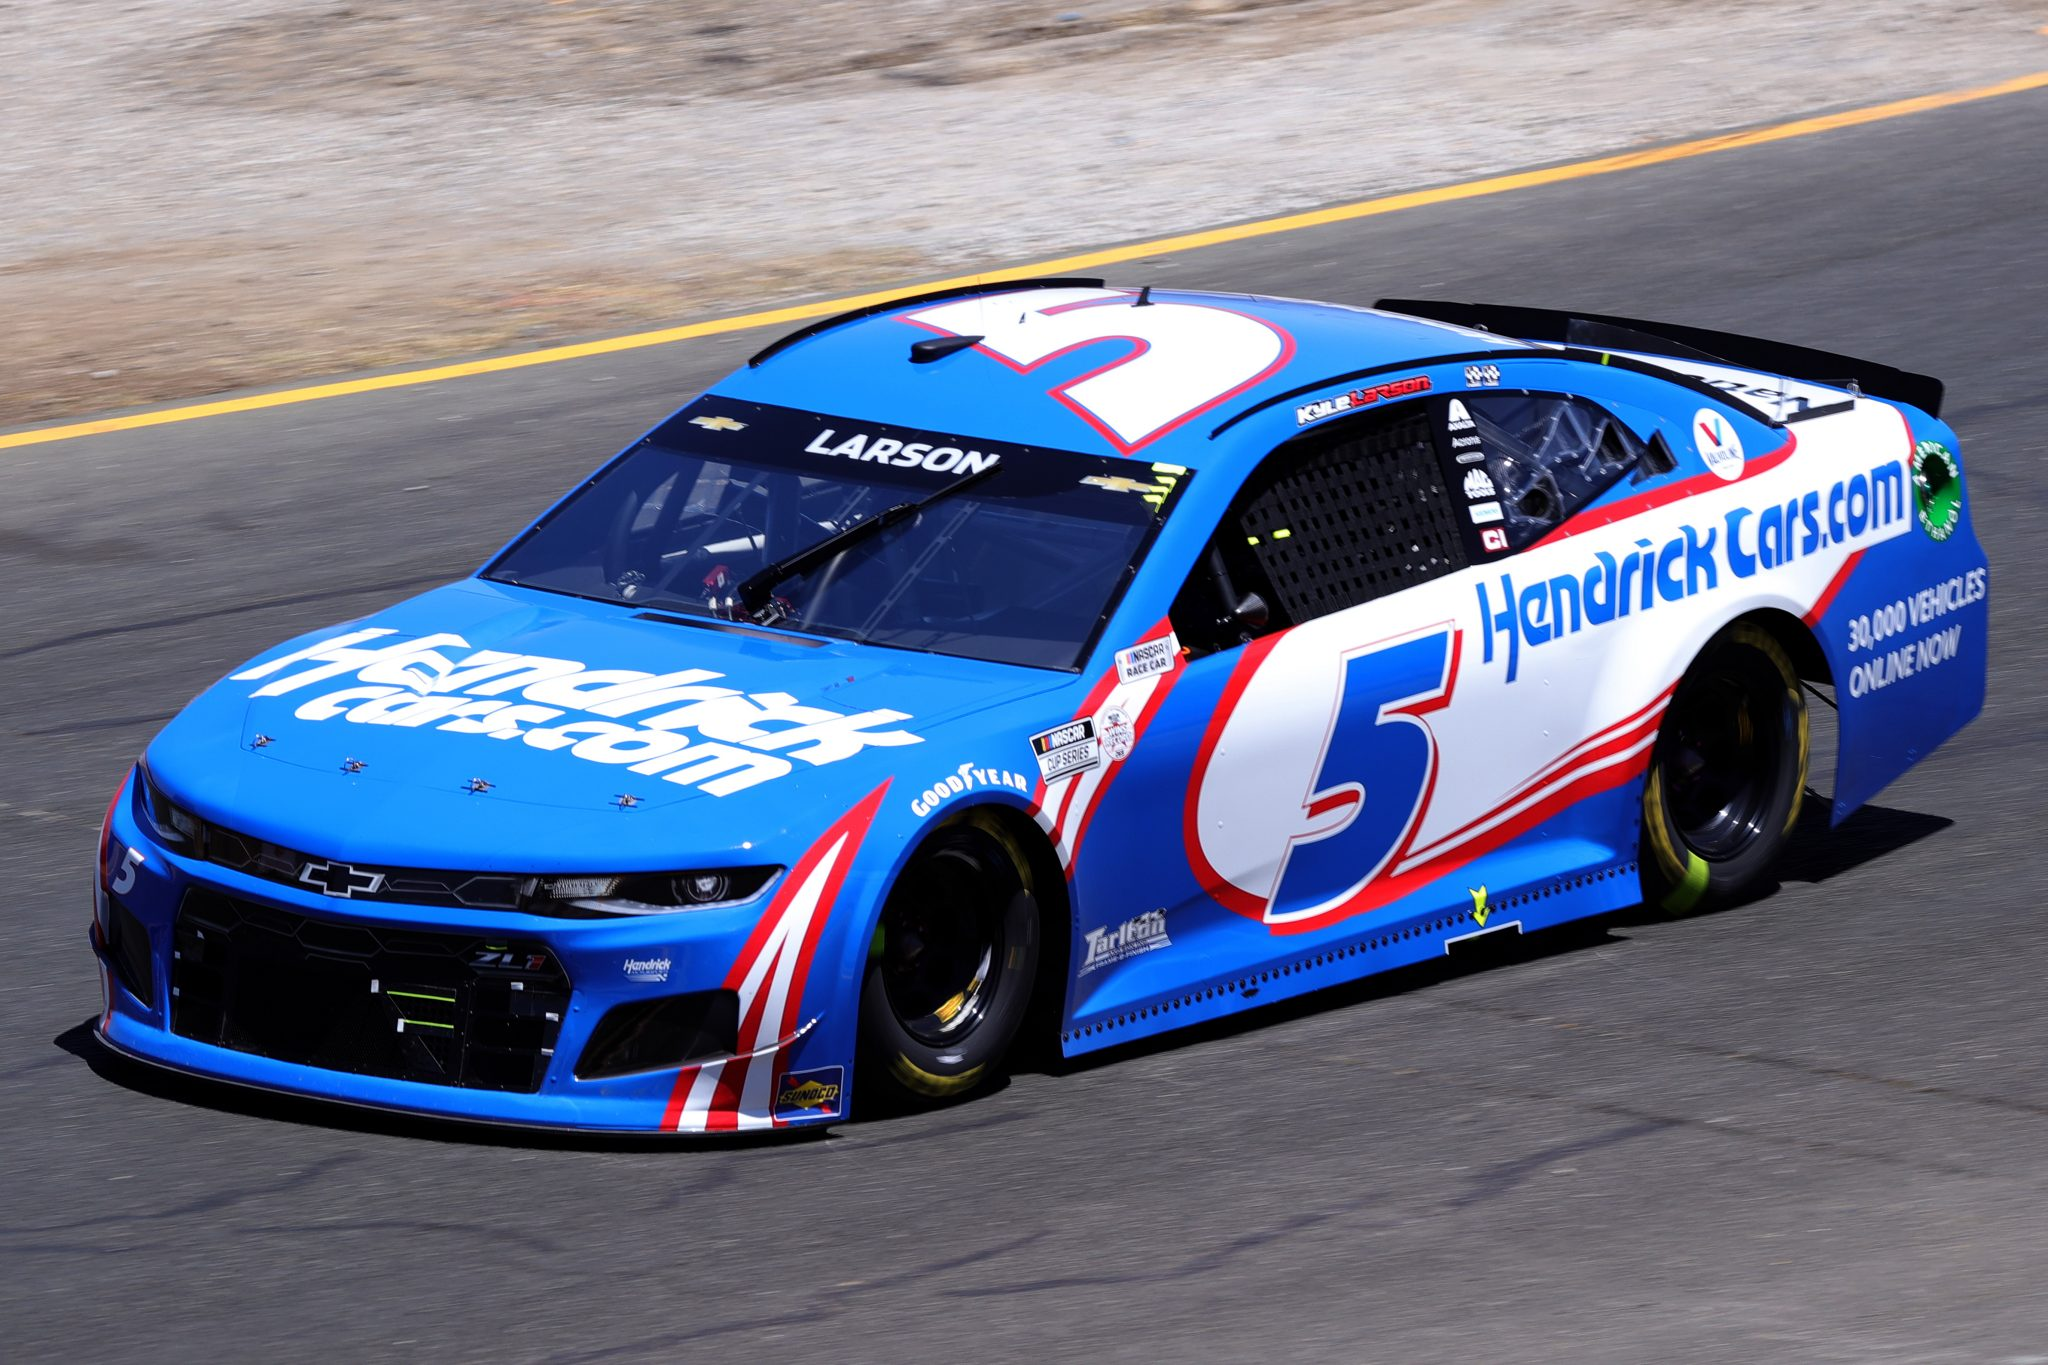 SONOMA, CALIFORNIA - JUNE 06: Kyle Larson, driver of the #5 HendrickCars.com Chevrolet, drives during the NASCAR Cup Series Toyota/Save Mart 350 at Sonoma Raceway on June 06, 2021 in Sonoma, California. (Photo by Carmen Mandato/Getty Images) | Getty Images